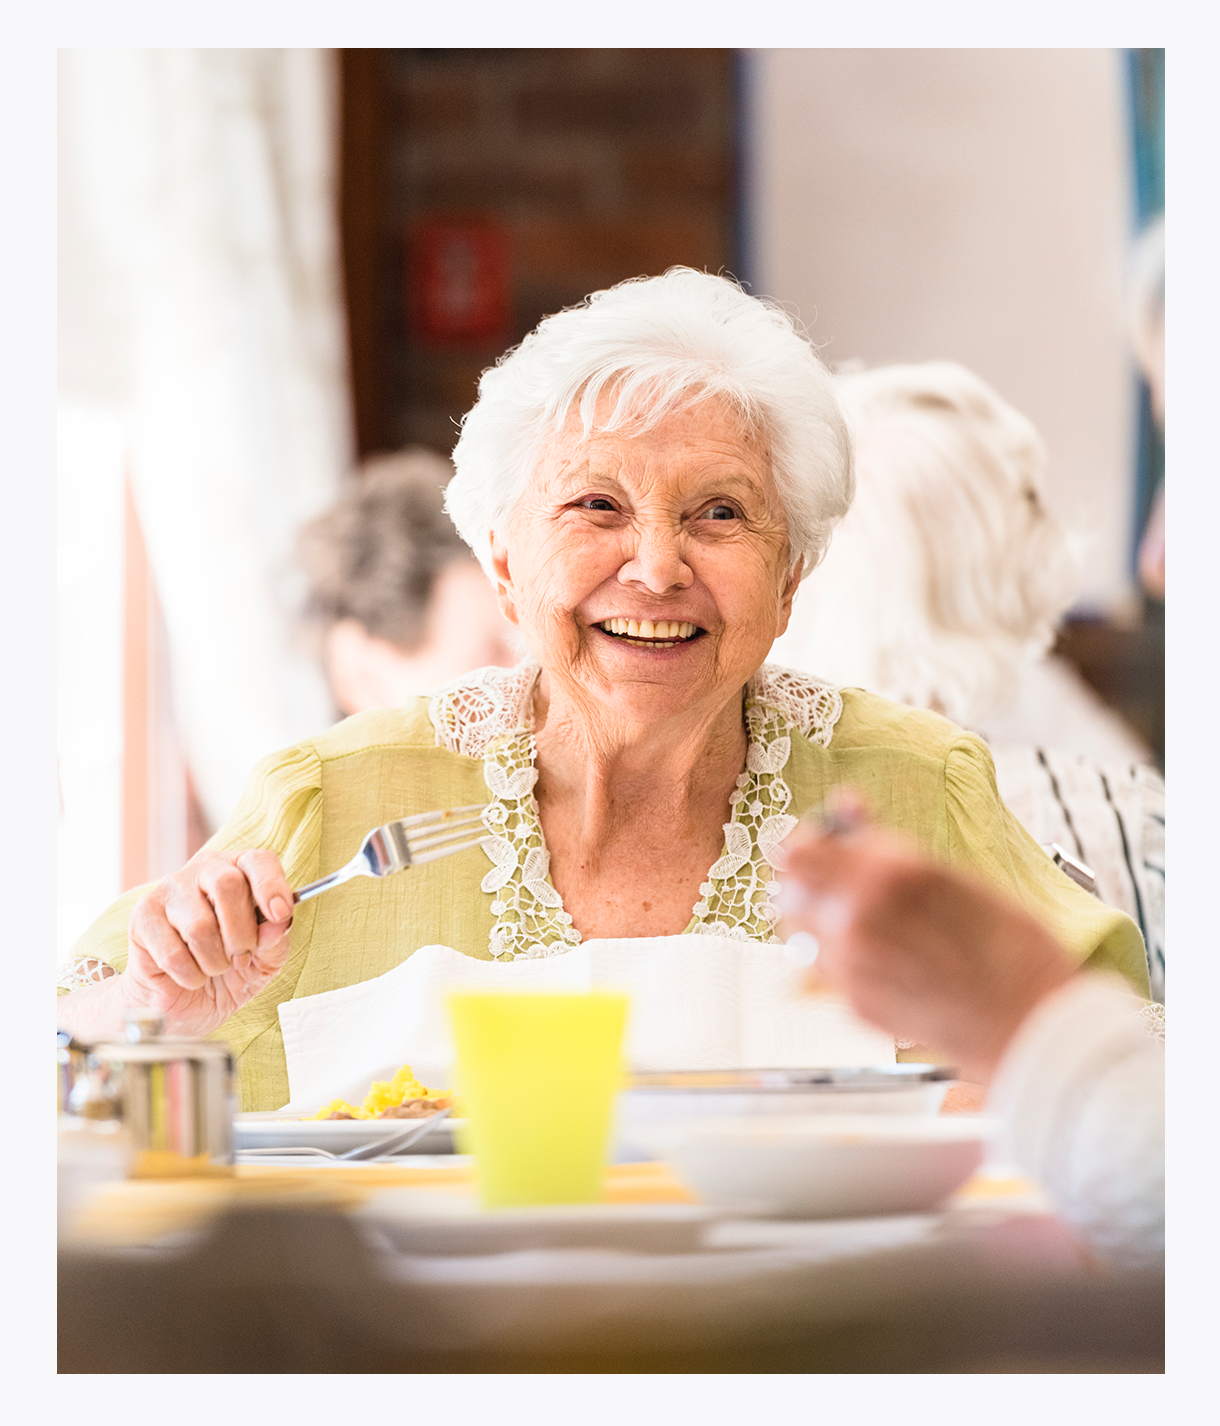 Elderly woman enjoying restaurant-style meal at MorseLife PACE Community Center